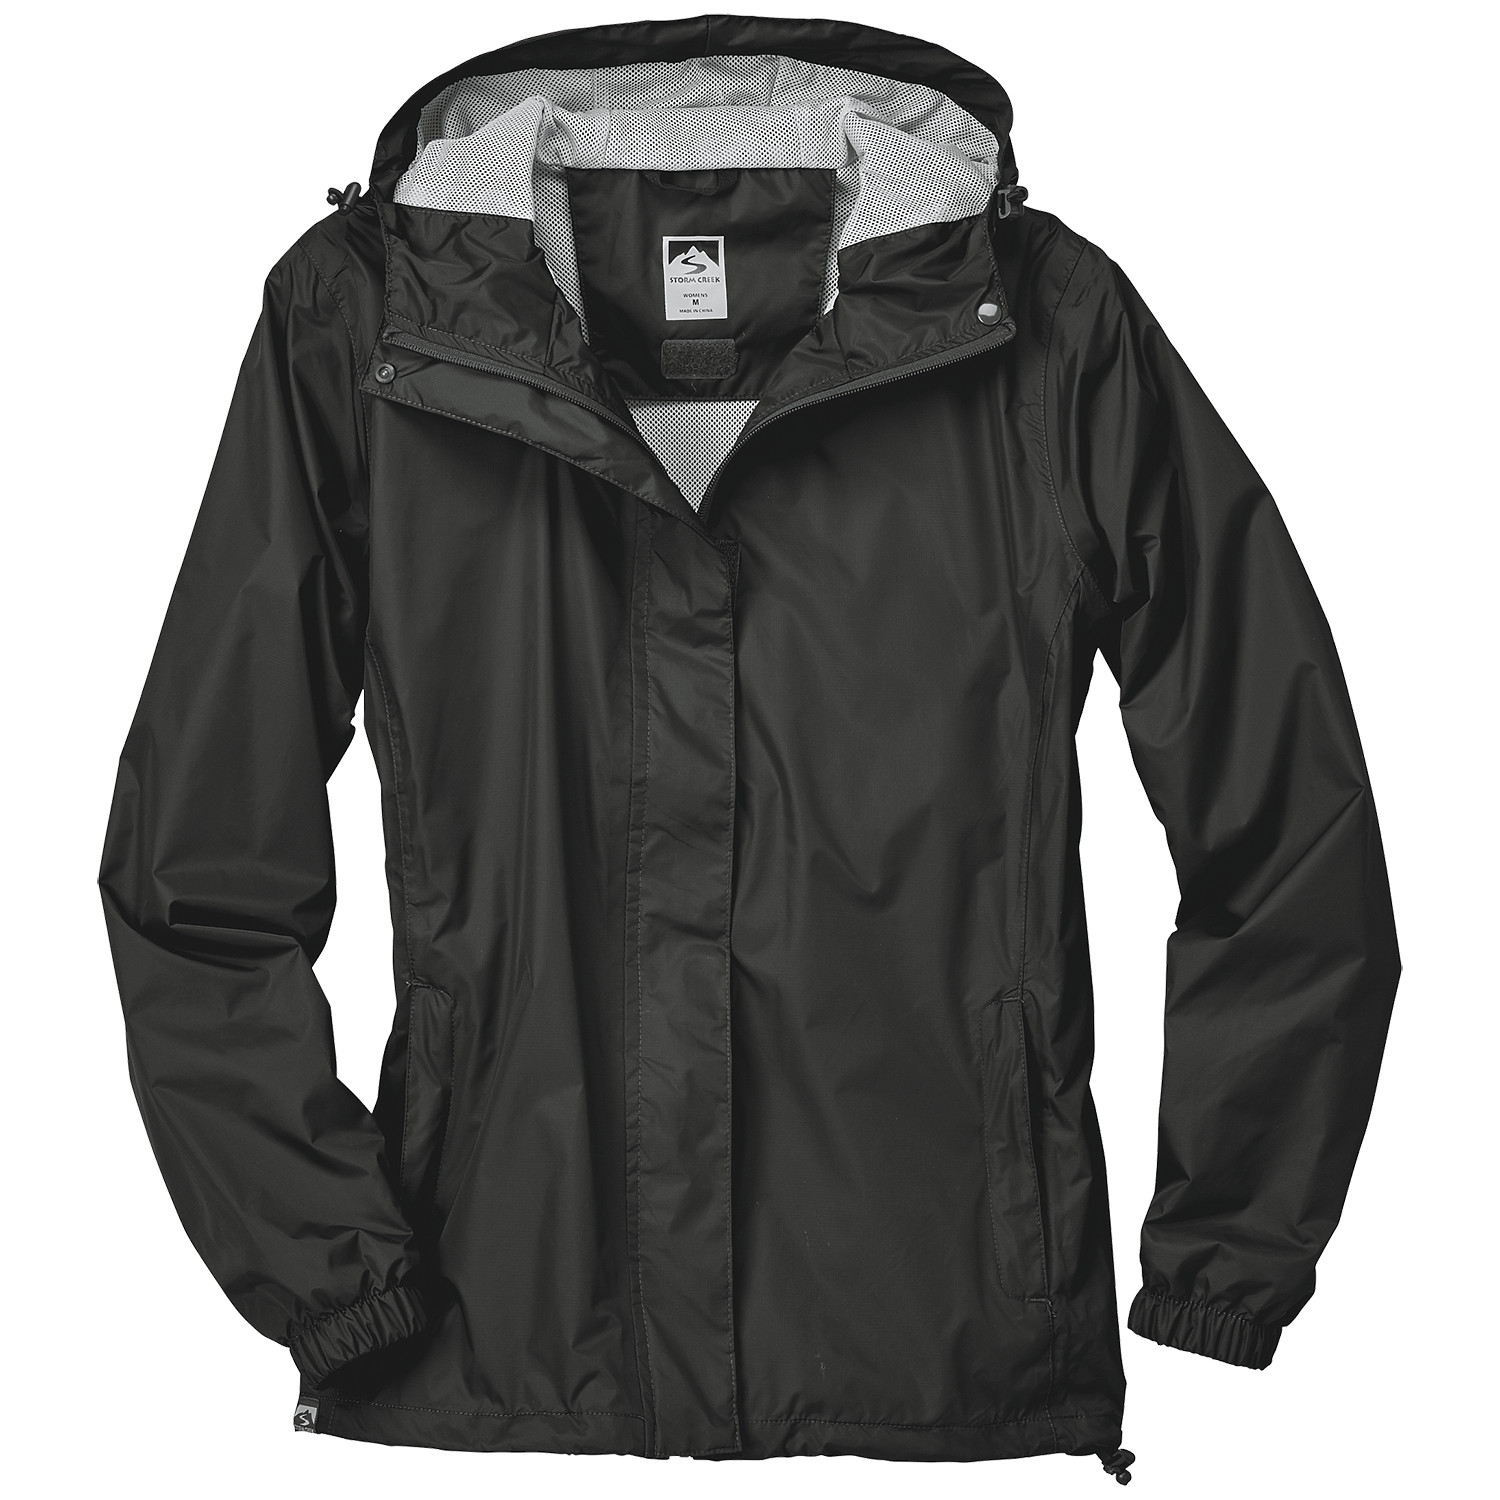 Storm Creek 6565 - Women's 'Rachel' Packable Rain Jacket